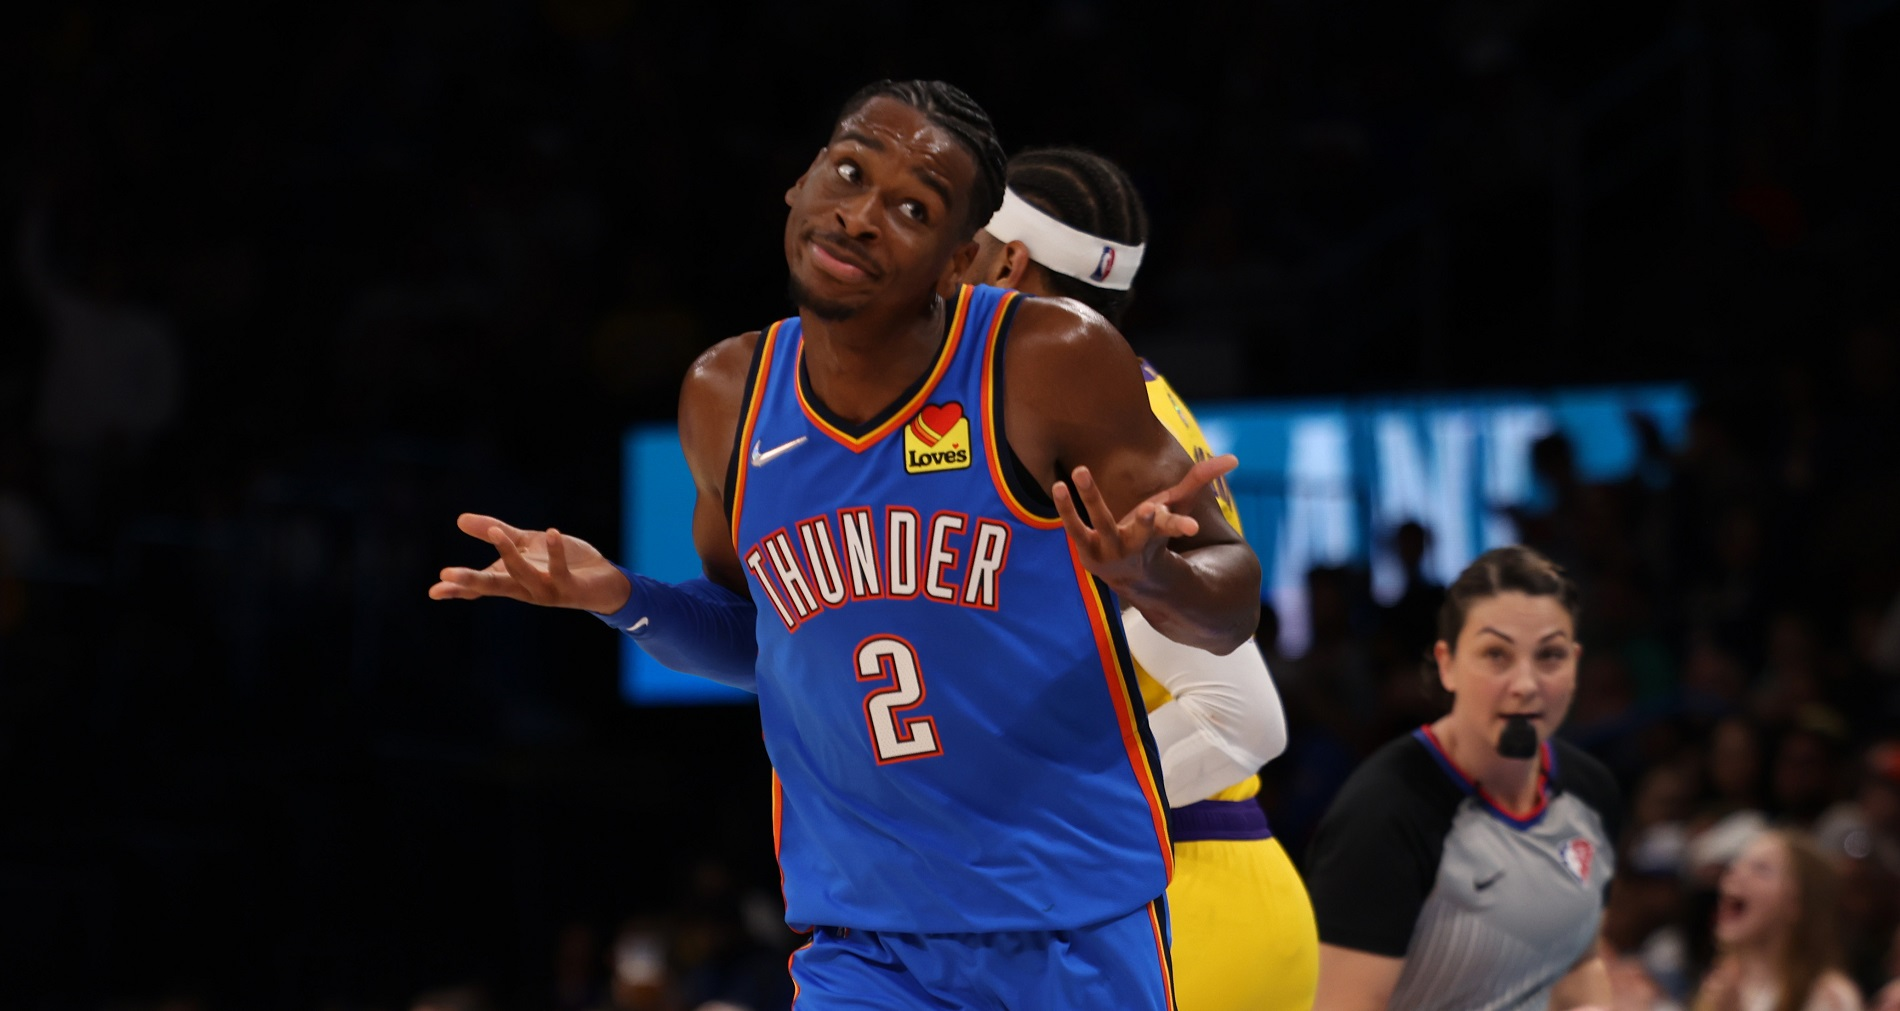 Thunder rally from 26 down to shock Lakers